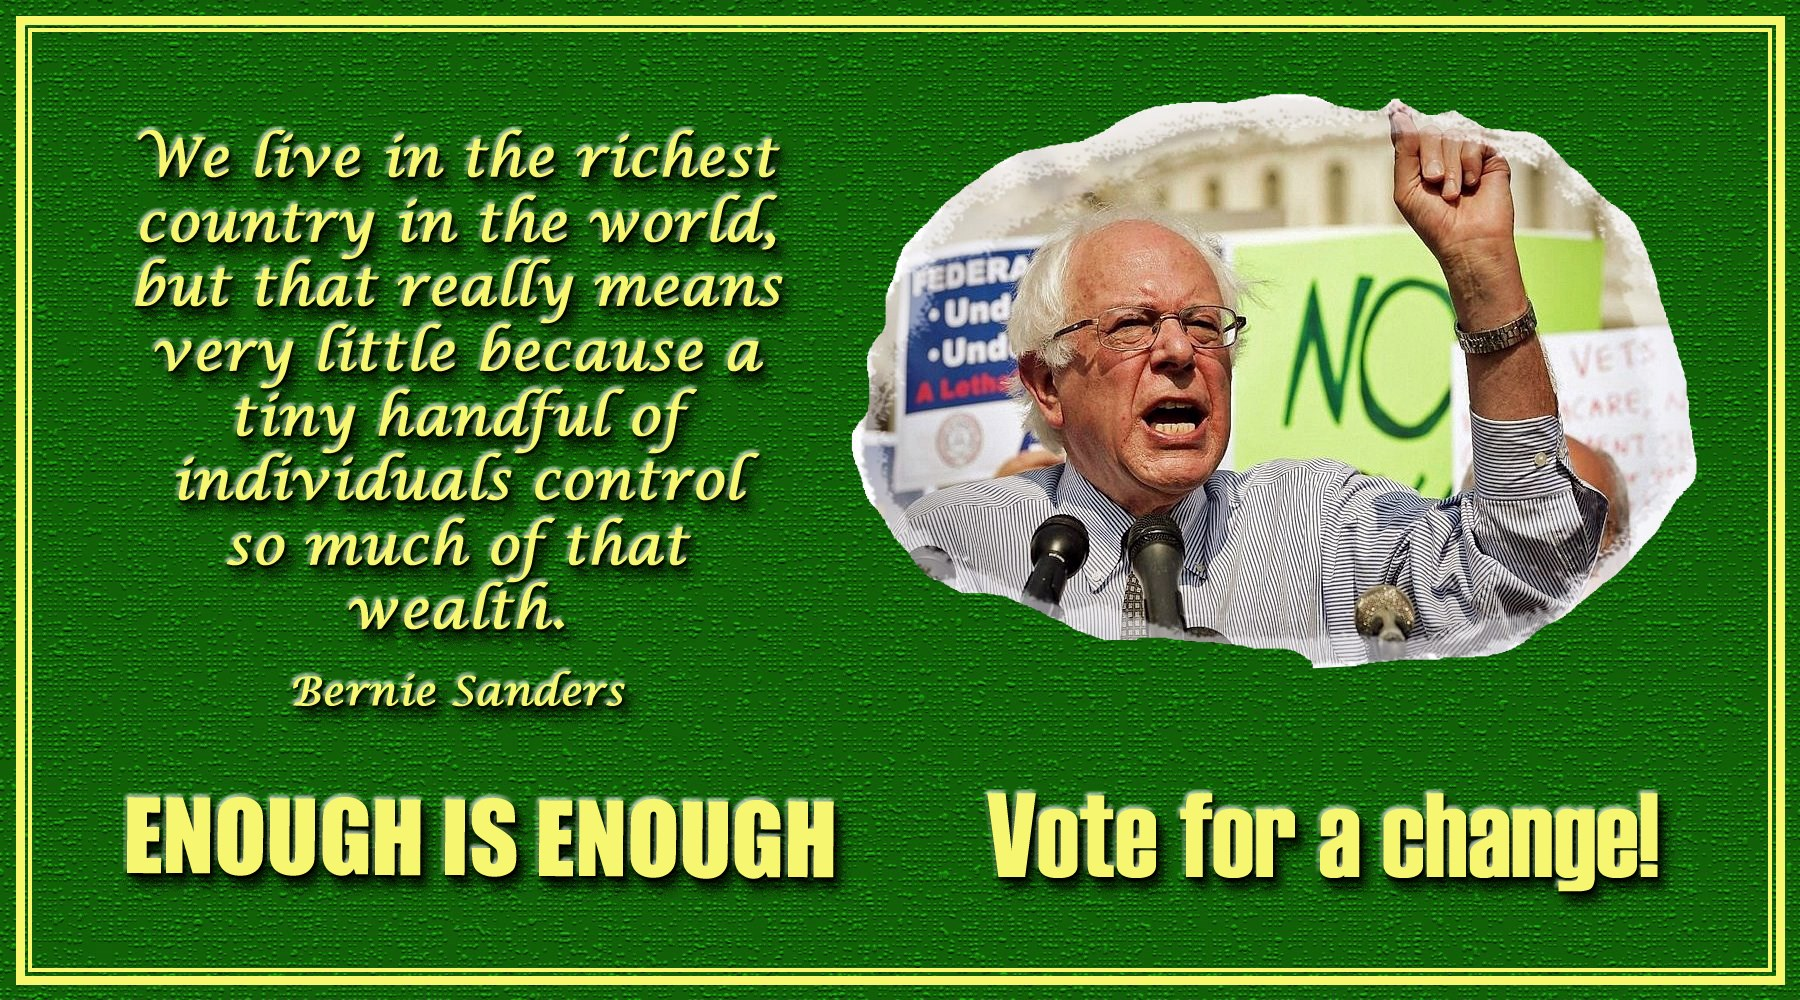 00 bernie on wealth 030915